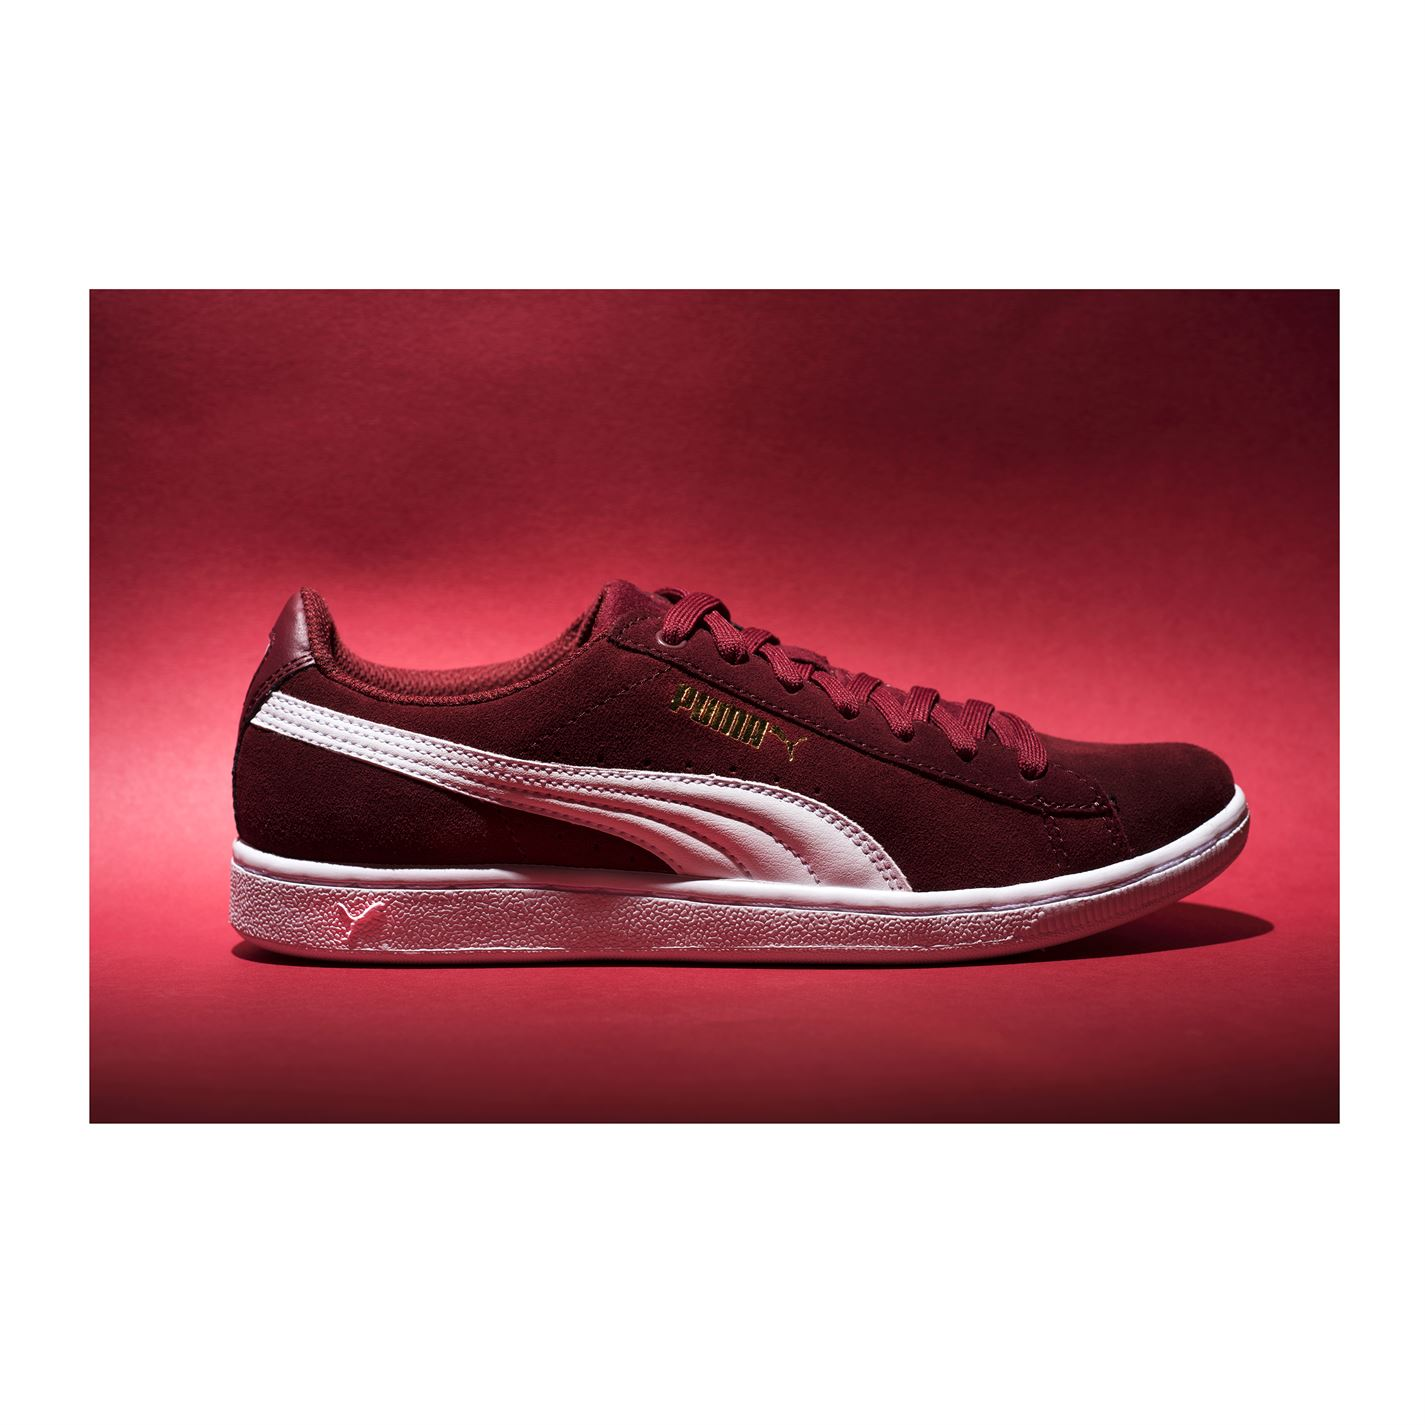 Puma Womens Ladies Vikky Sports Sports Sports shoes Lace Up Trainers Sneakers Plimsoll 53c5cc